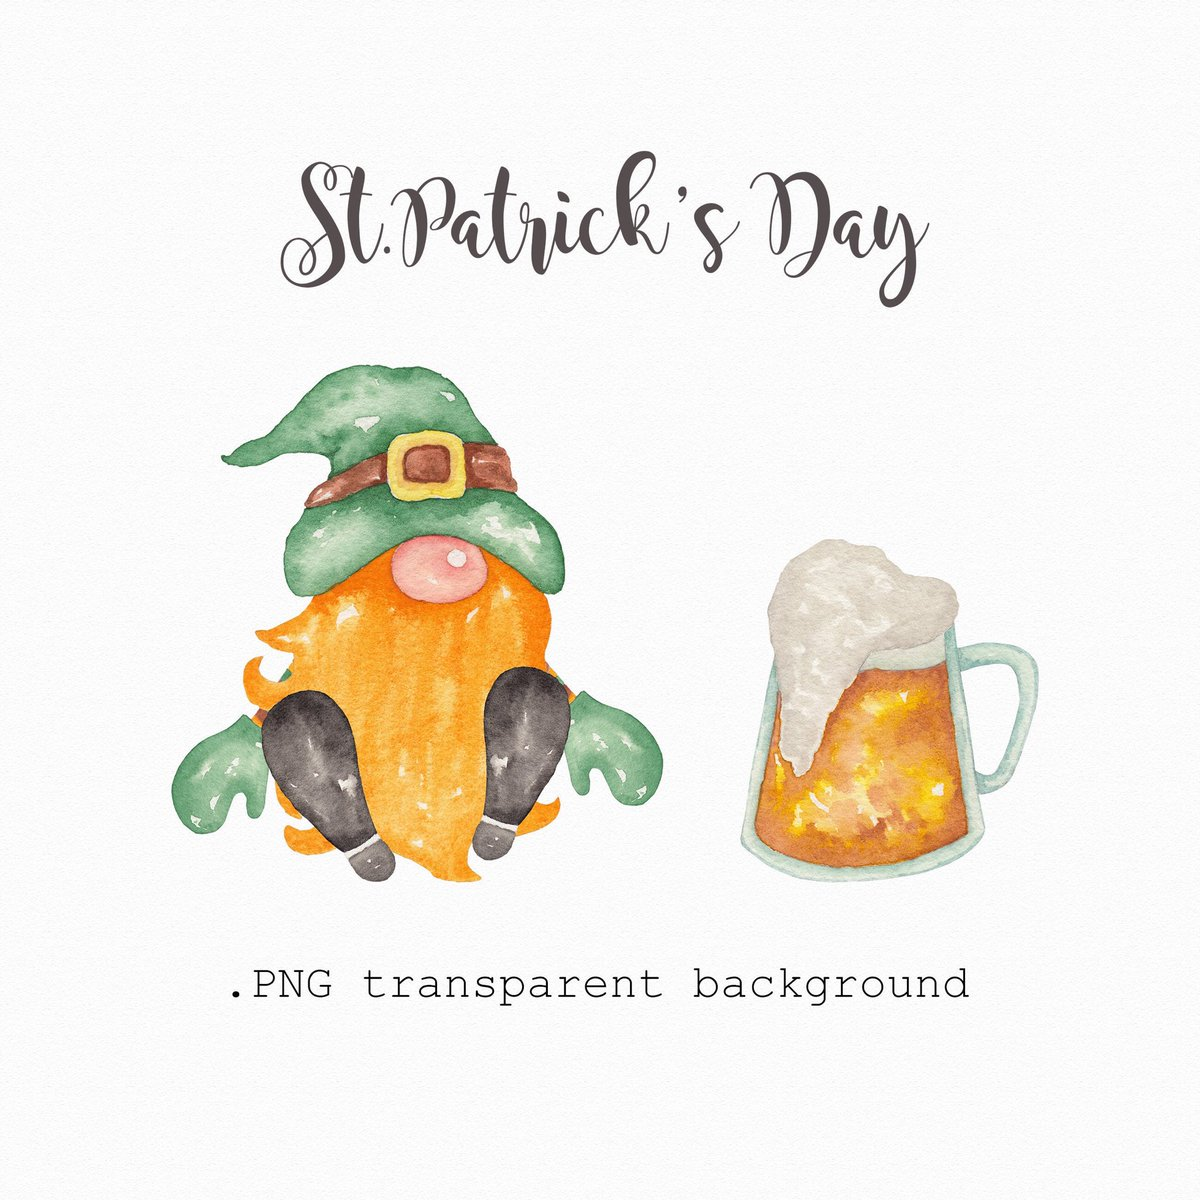 Ina Yordanova On Twitter Excited To Share This Item From My Etsy Shop Watercolor Gnome Clipart Digital Clipart St Patrick S Day Invitation Clipart Printable Orange And Green Gnome And Beer Mug Lucky Clipart